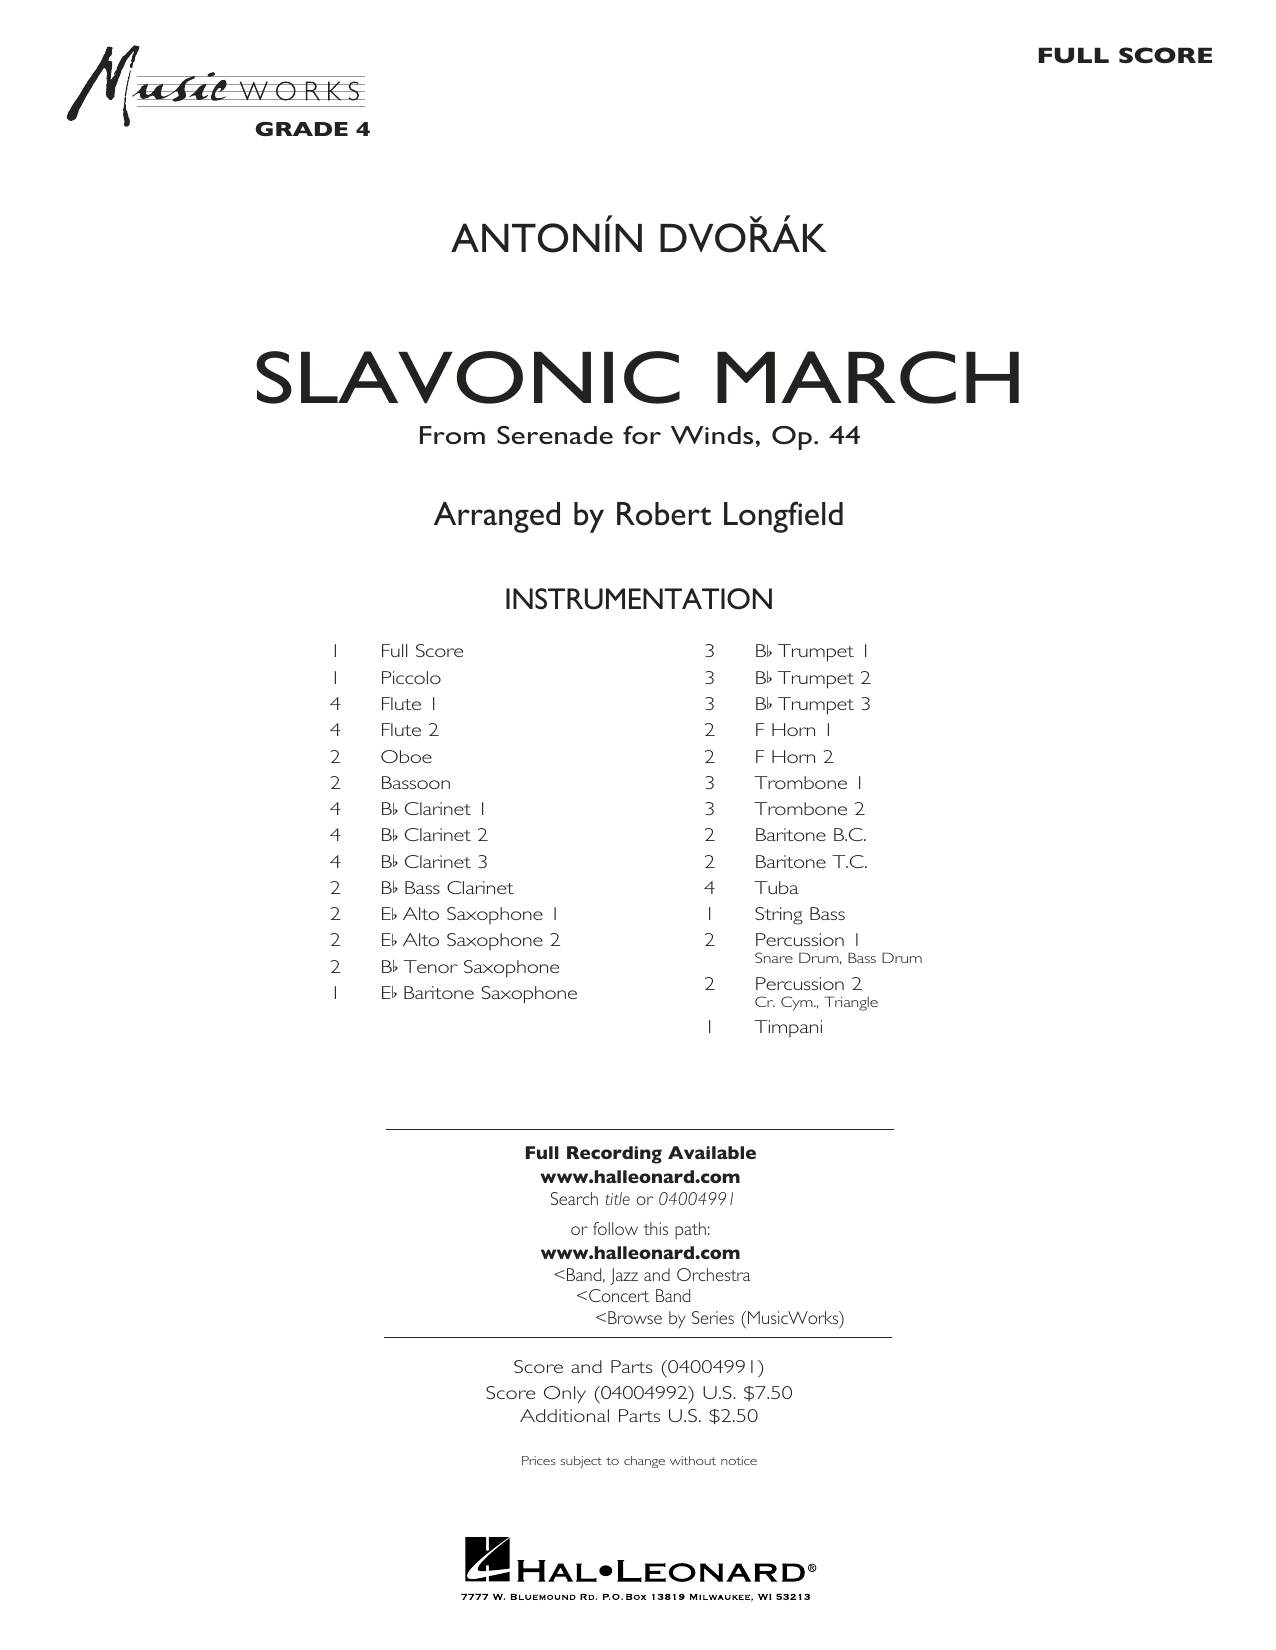 Slavonic March (from Serenade for Winds, Op. 44) - Conductor Score (Full Score) Partituras Digitales